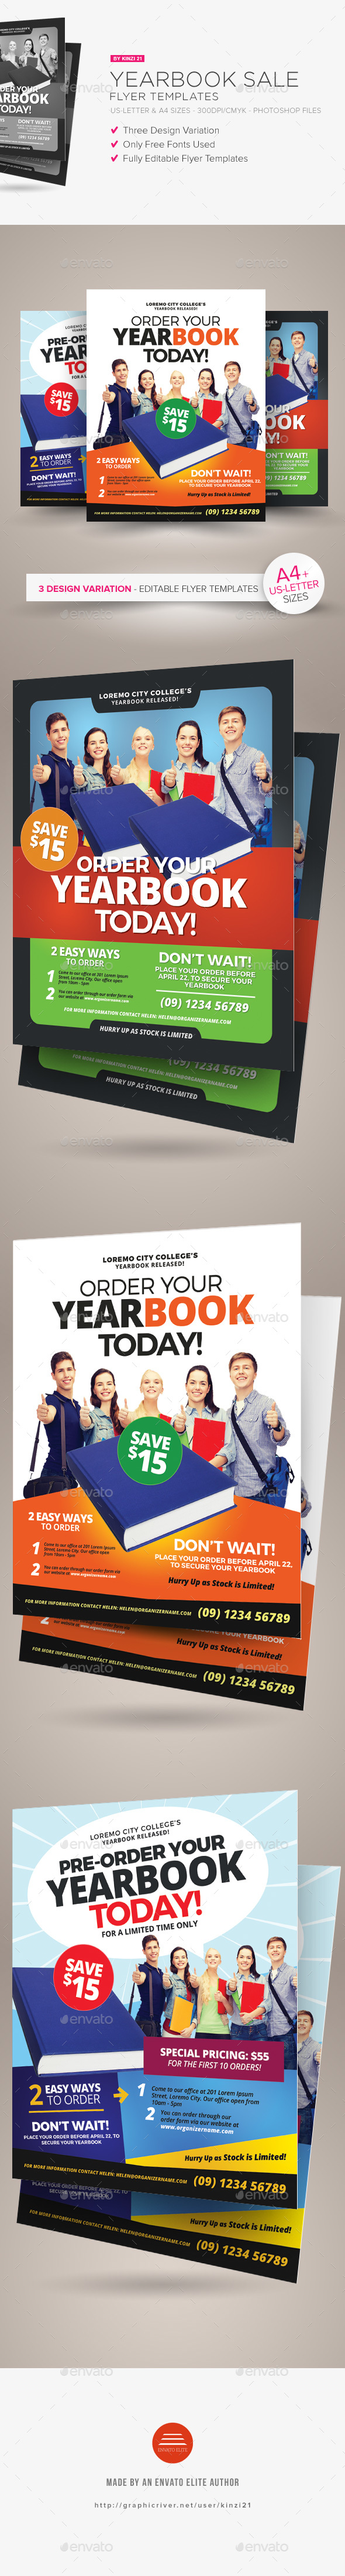 Yearbook Sale Flyer Templates - Commerce Flyers